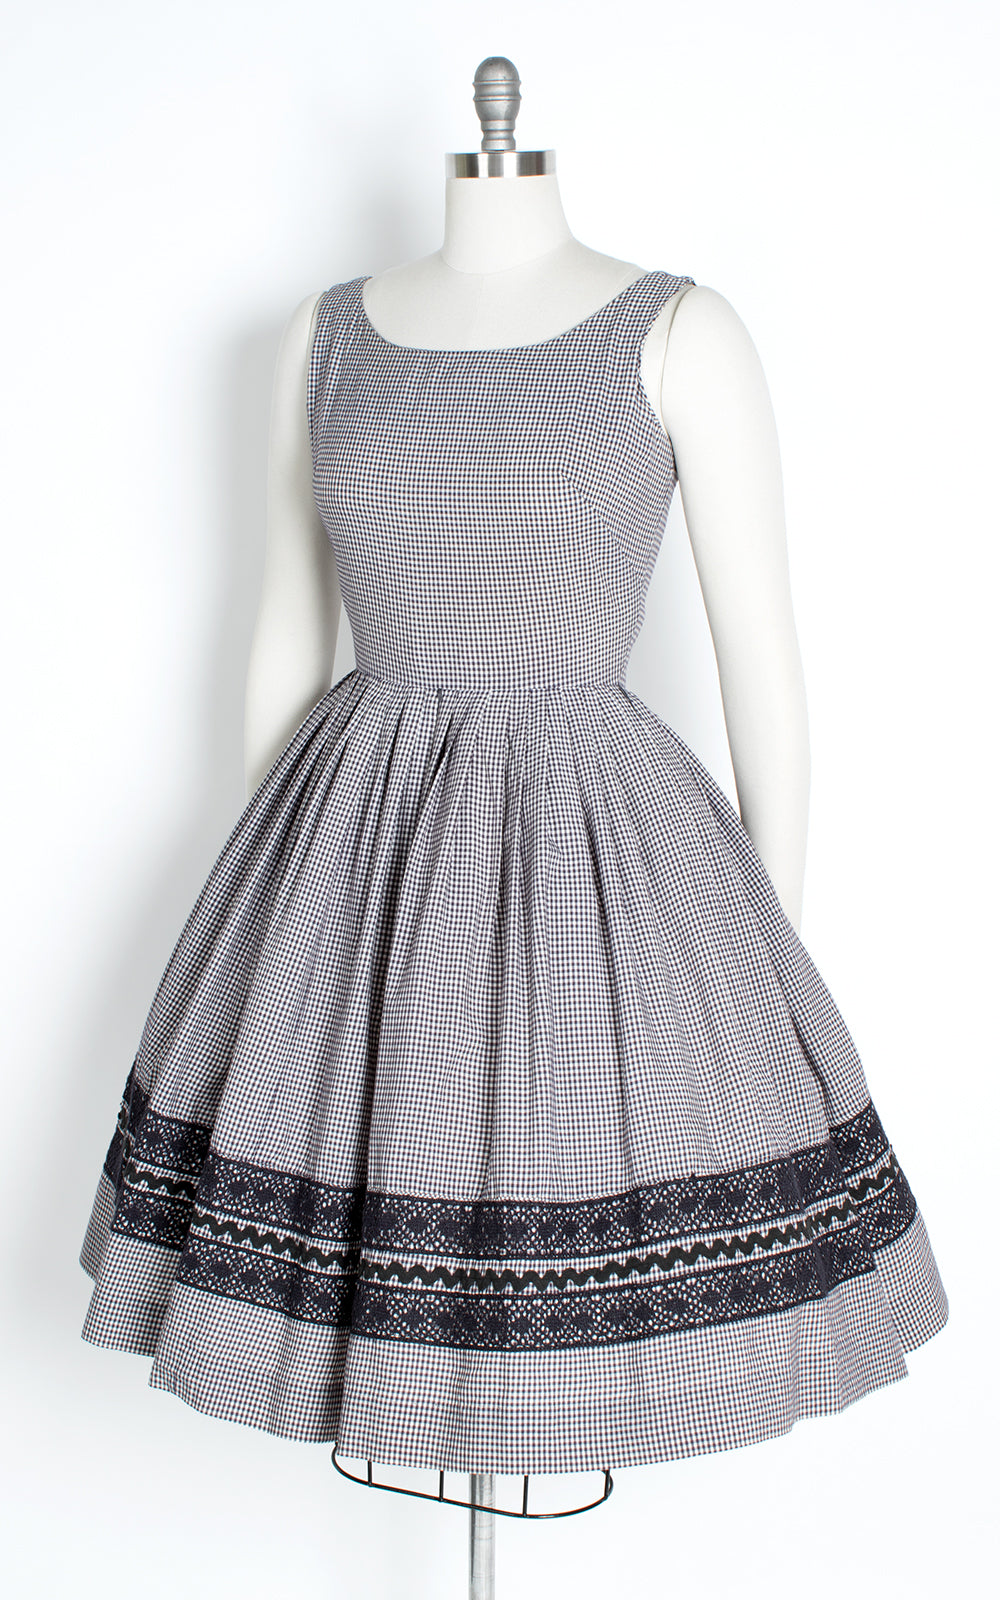 1950s Gingham Cotton Sundress with Bolero